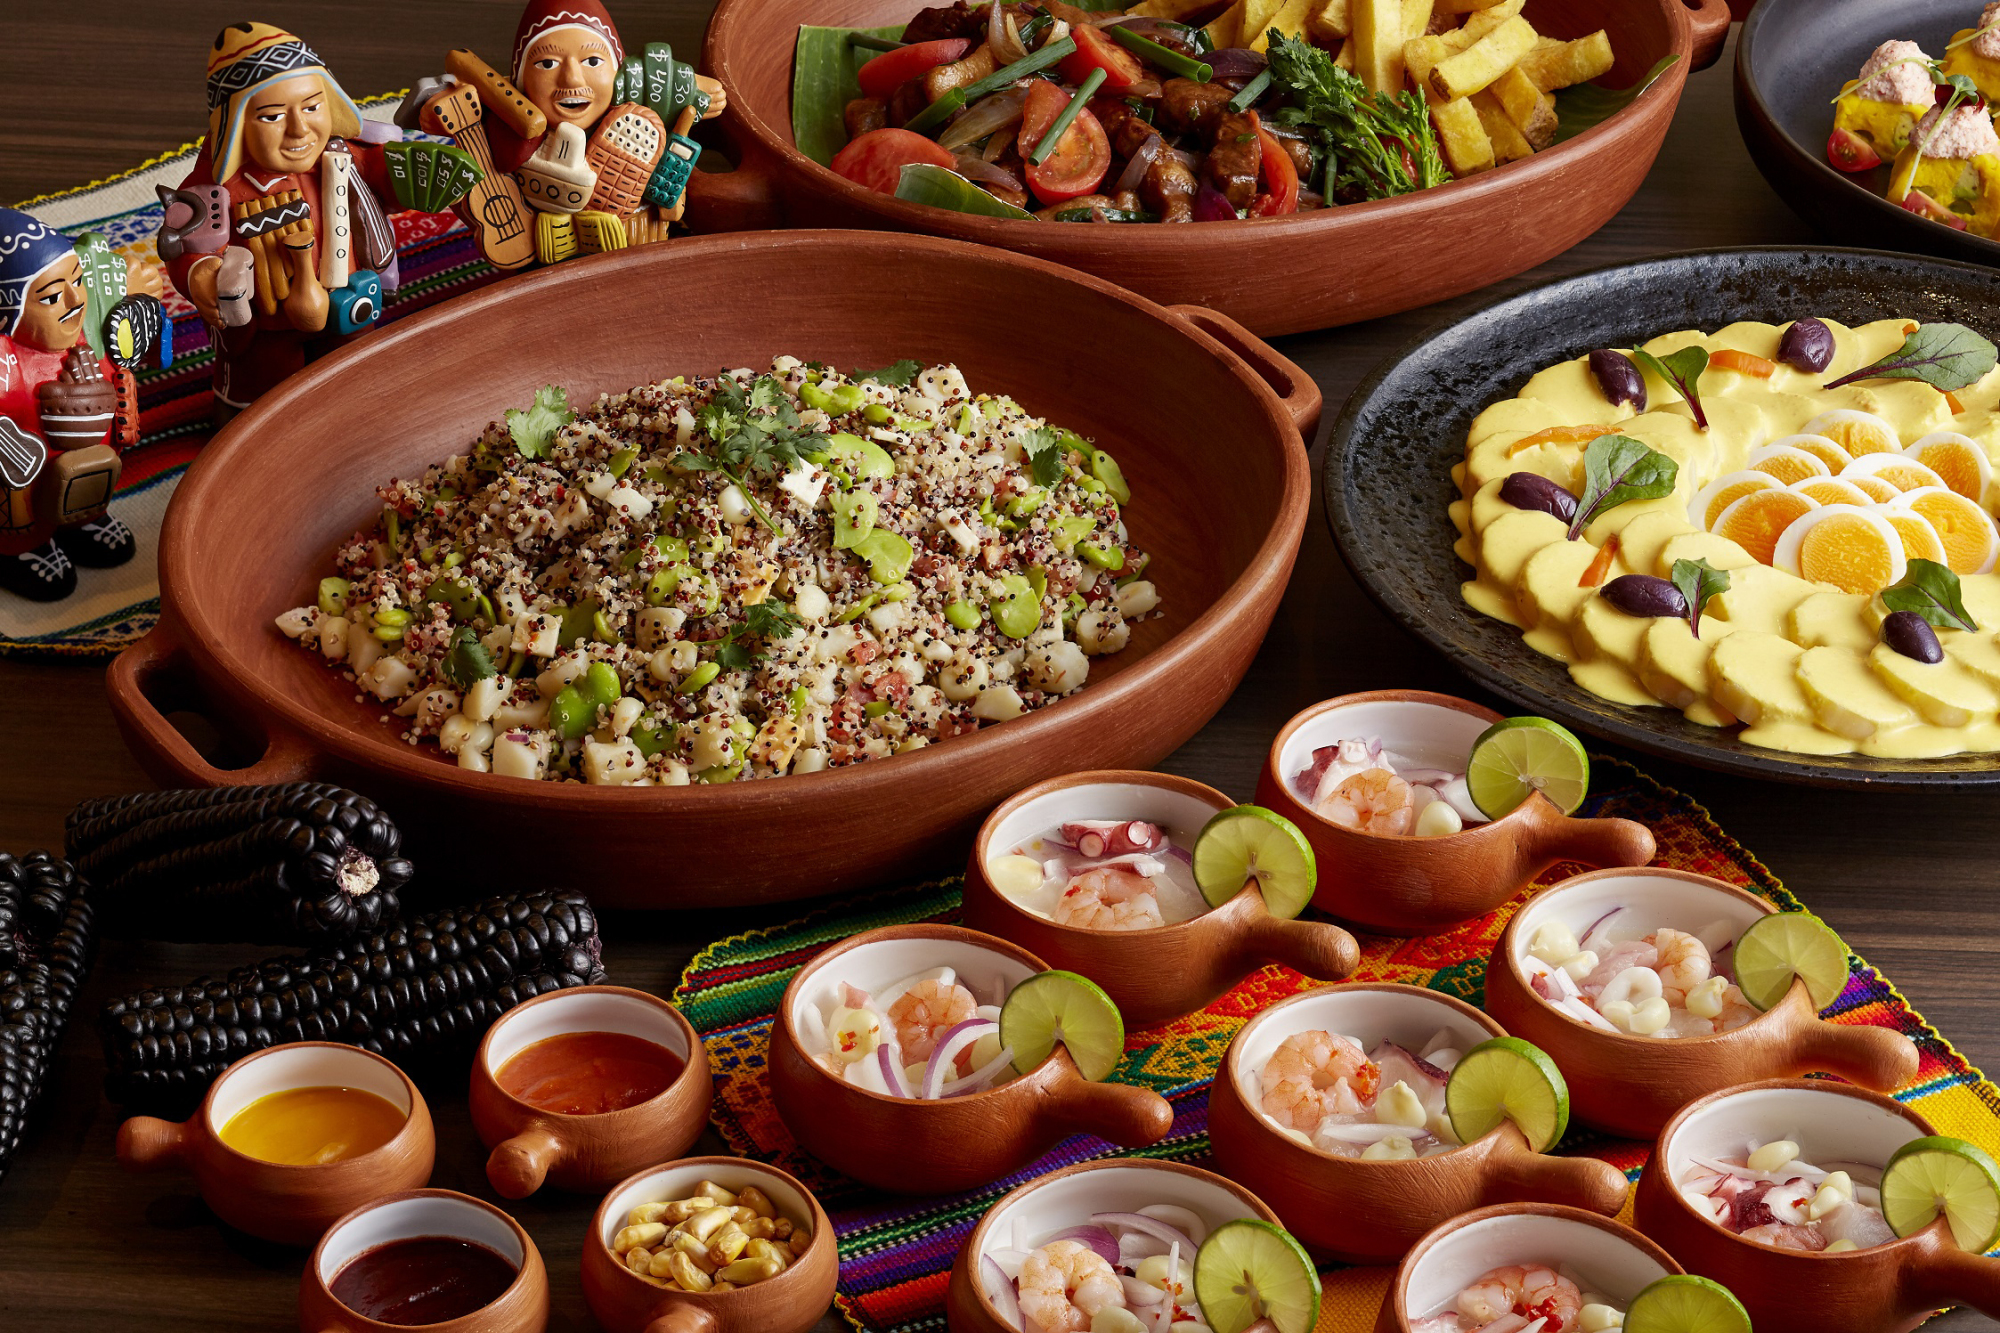 Buffet Cuisine Buffet Offers Chance To Try Authentic Peruvian Cuisine The Japan